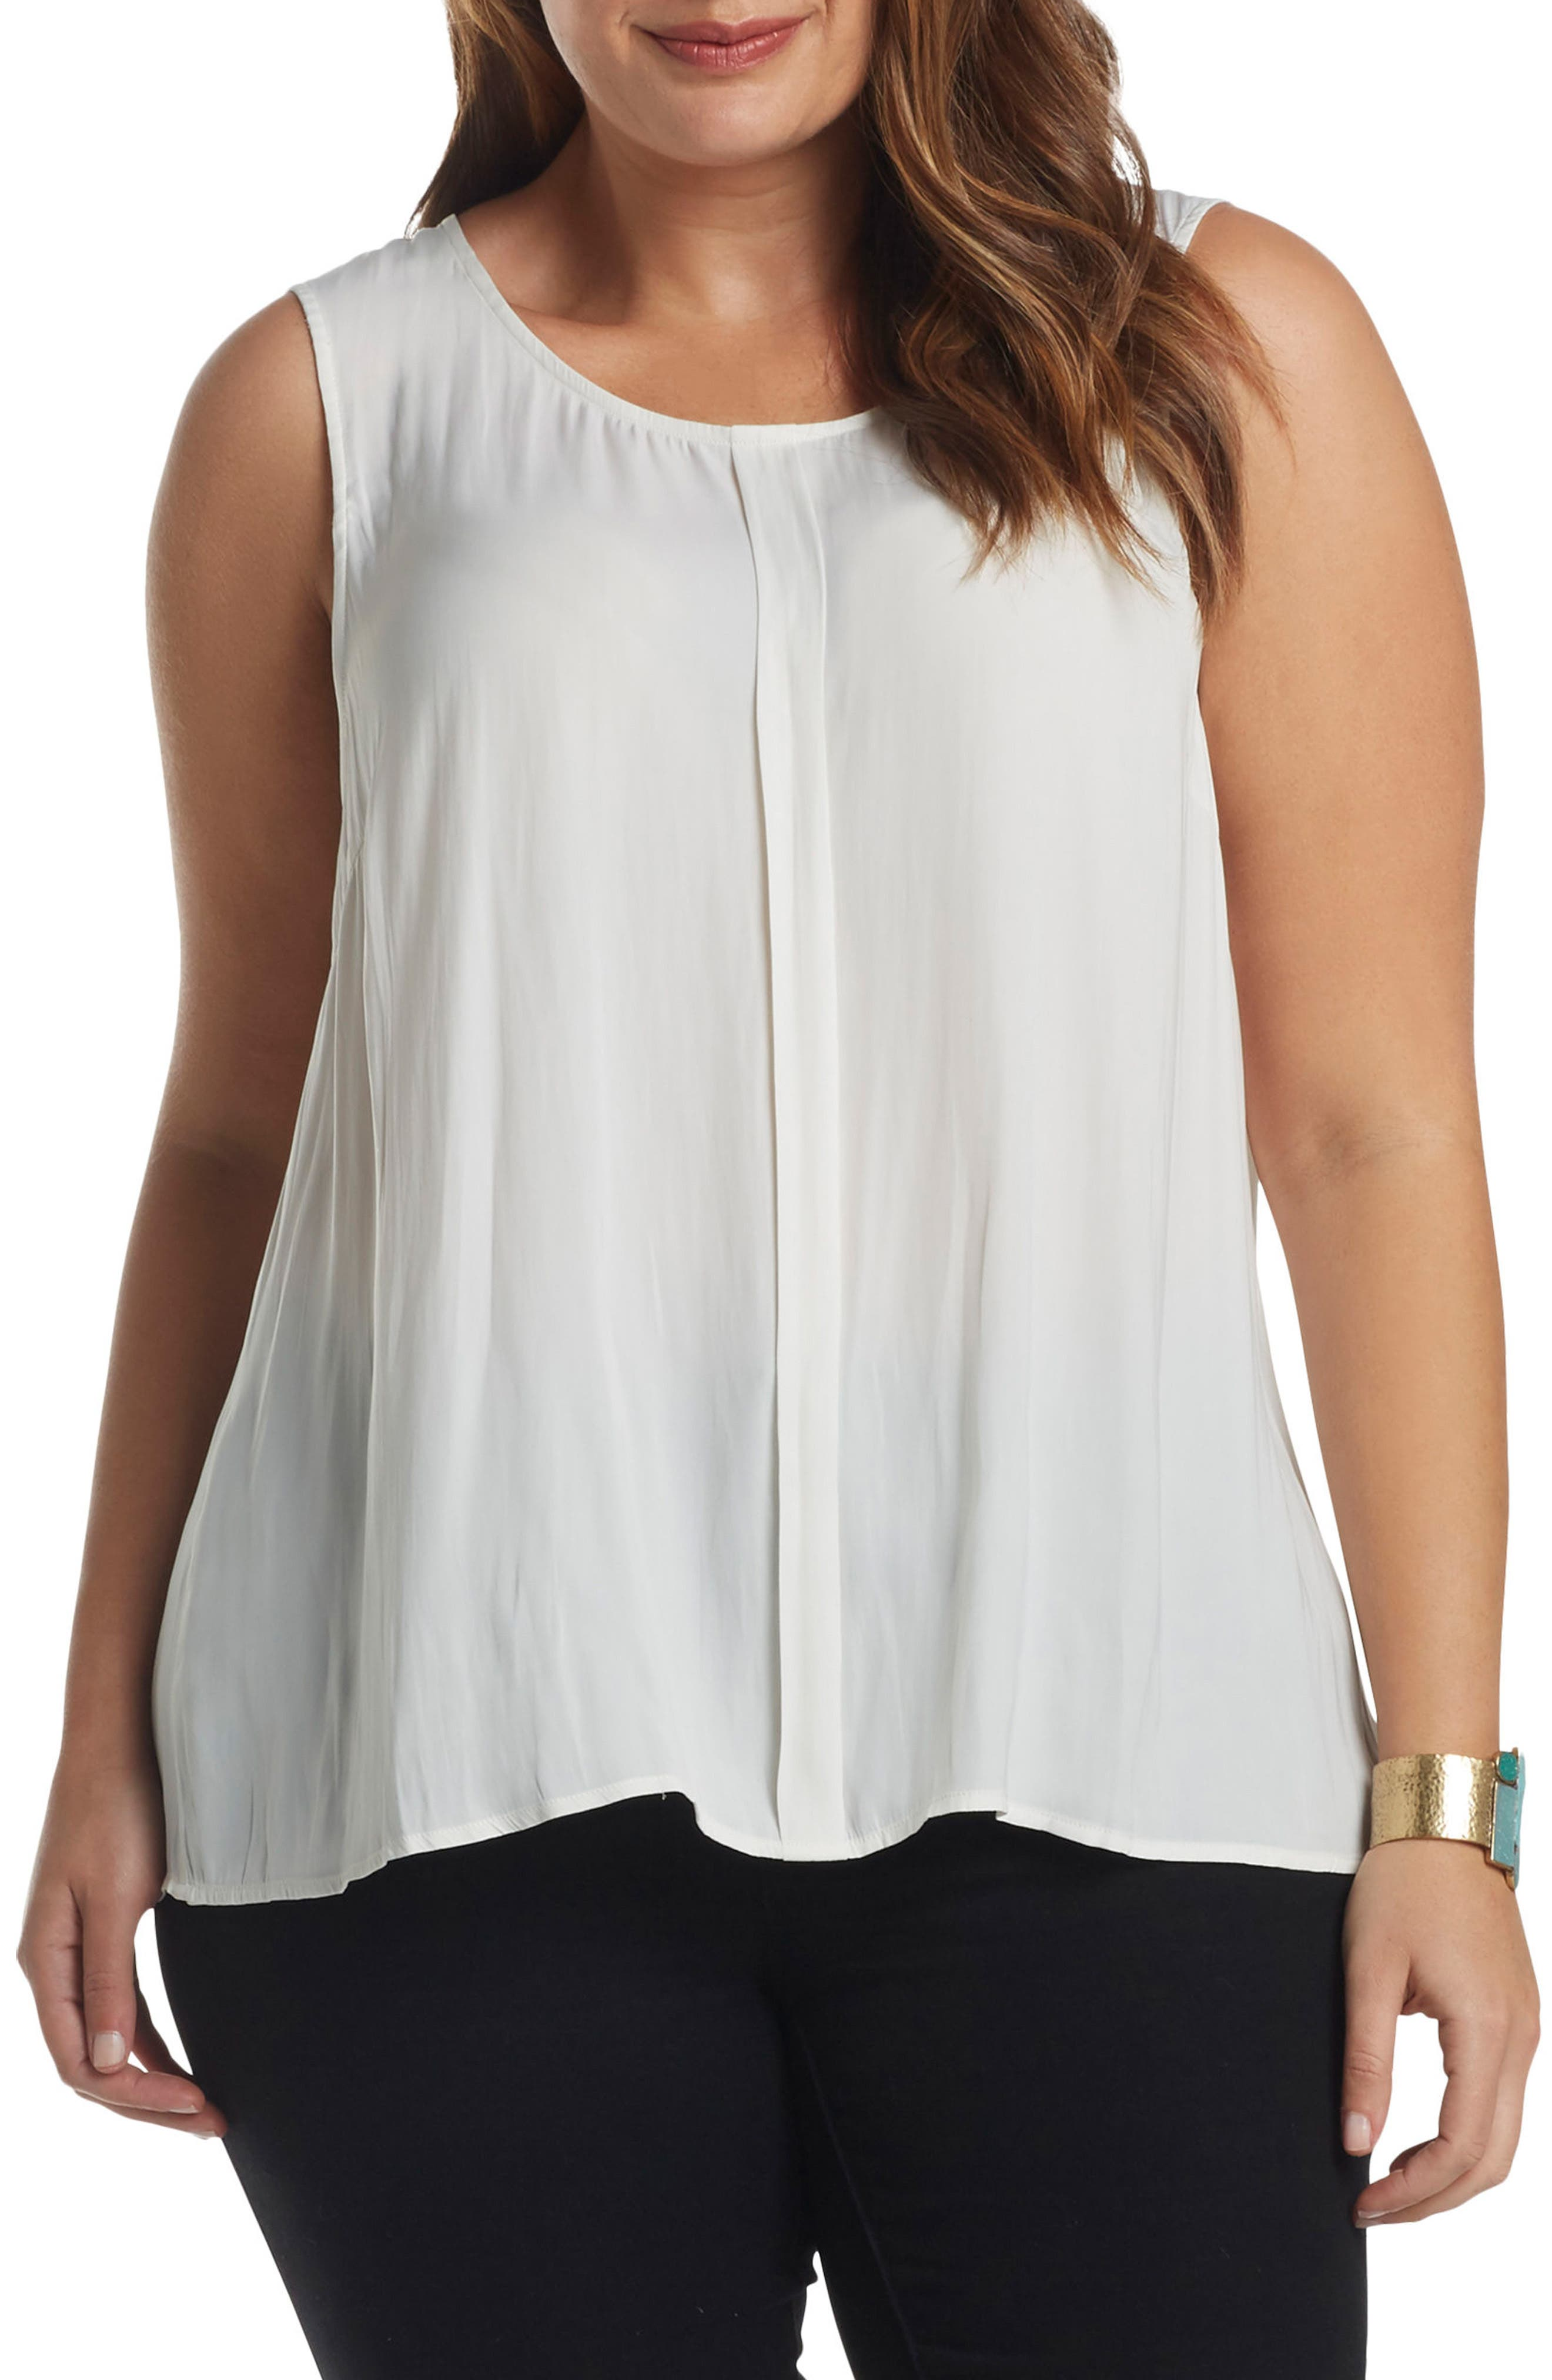 Angelle Sleeveless Top,                             Main thumbnail 1, color,                             Gardenia